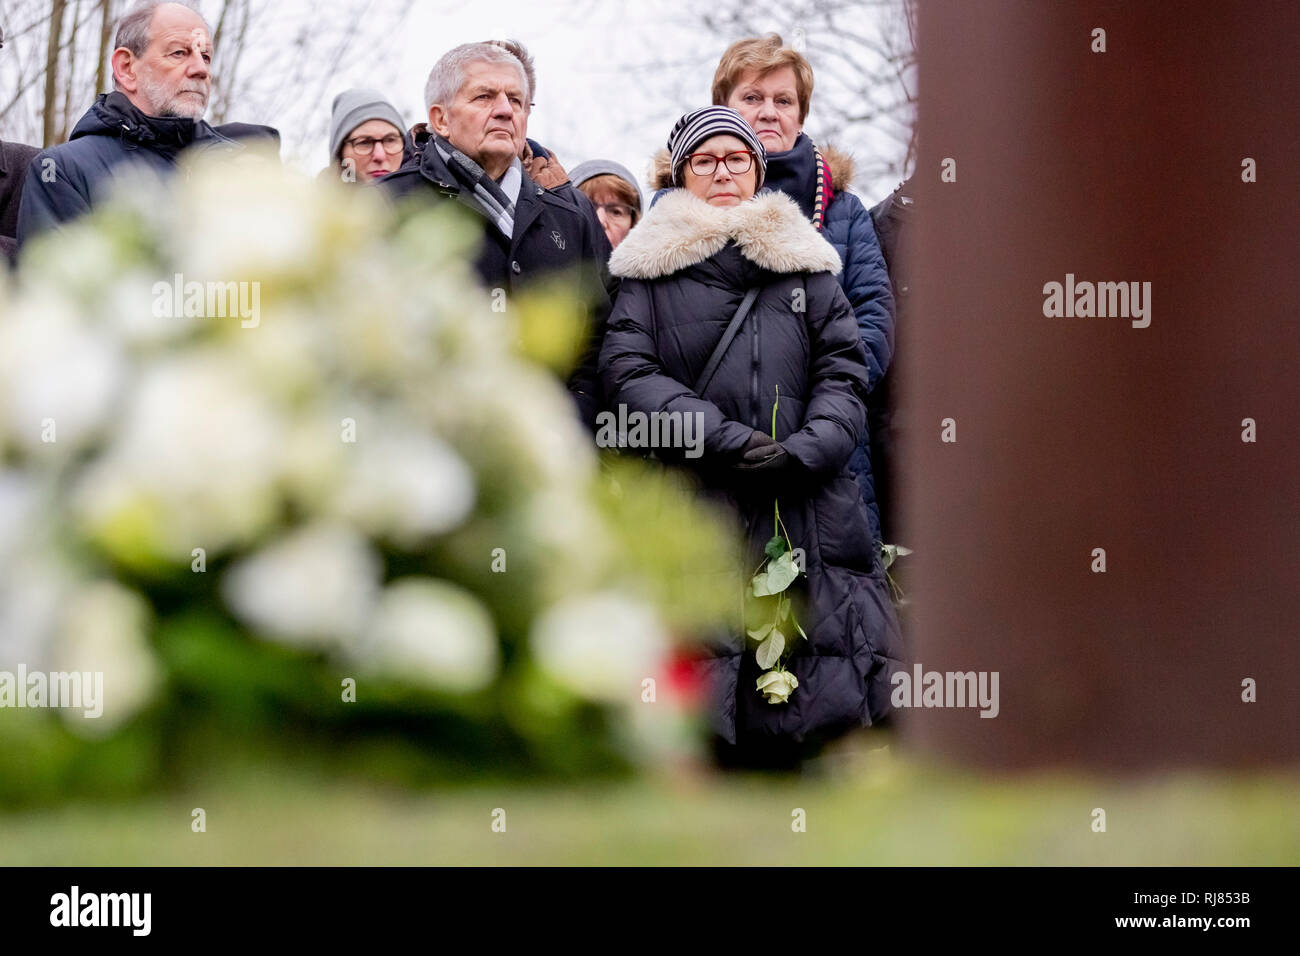 Berlin, Germany  05th Feb, 2019  Karin Gueffroy (r), mother of Chris